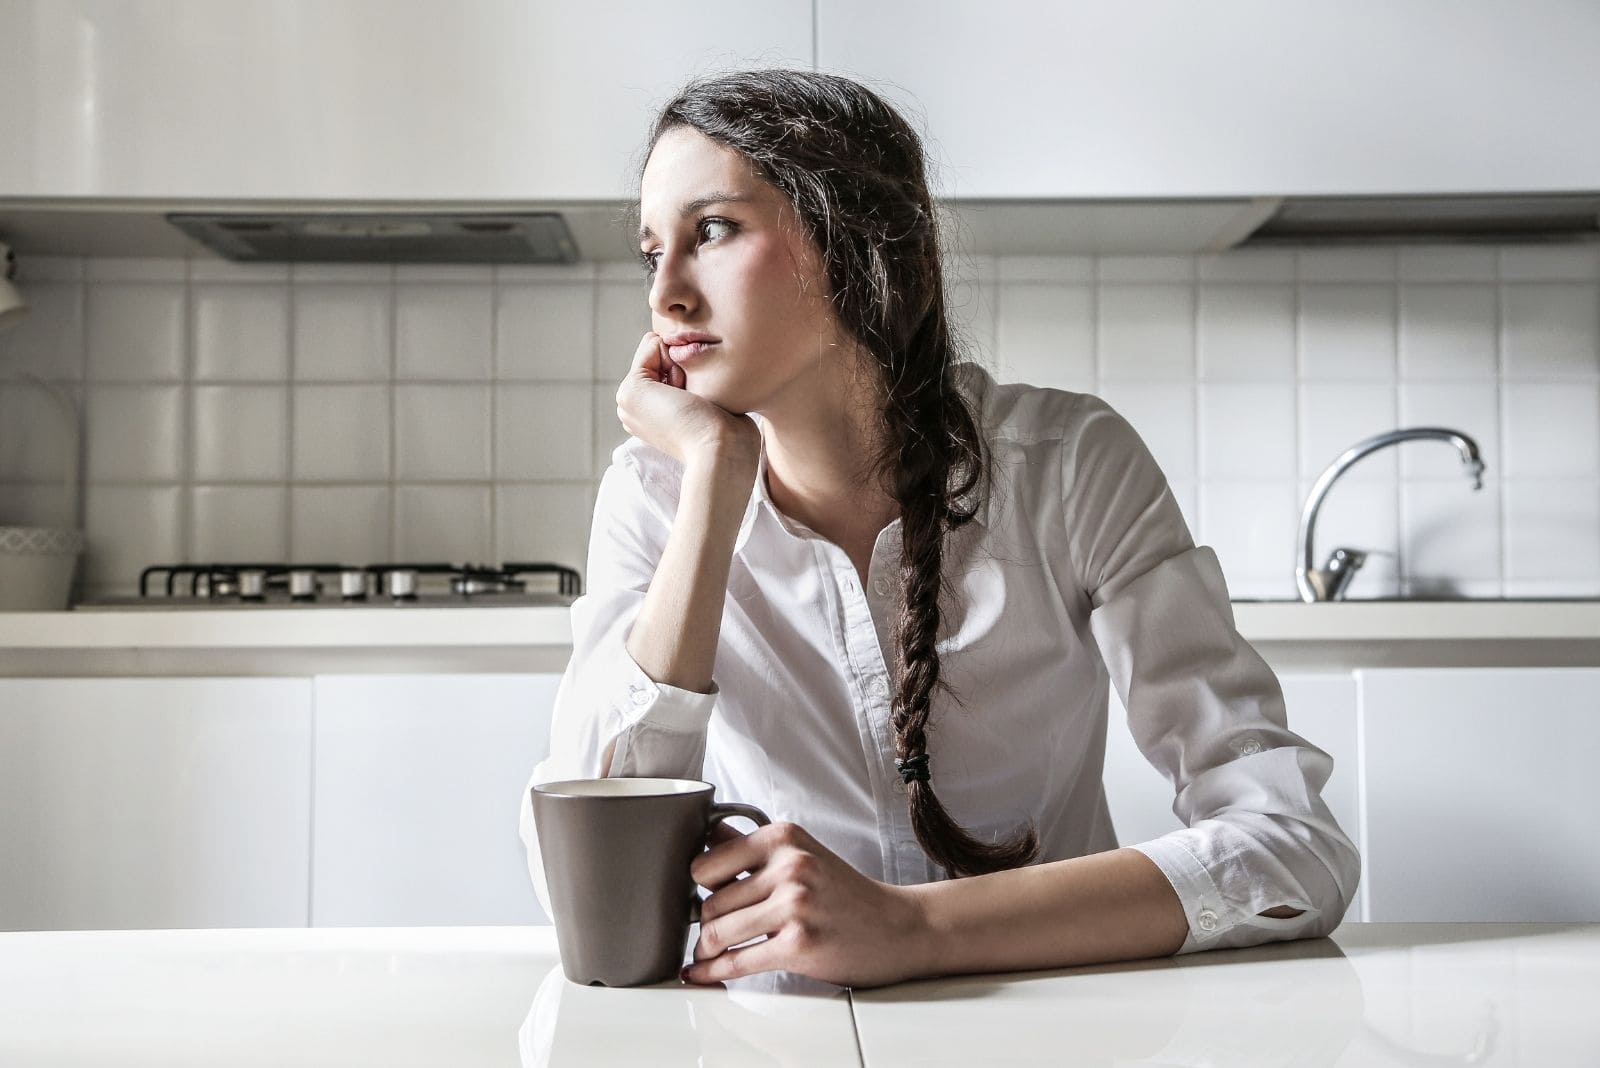 pensive woman drinking coffee in the kitchen looking away